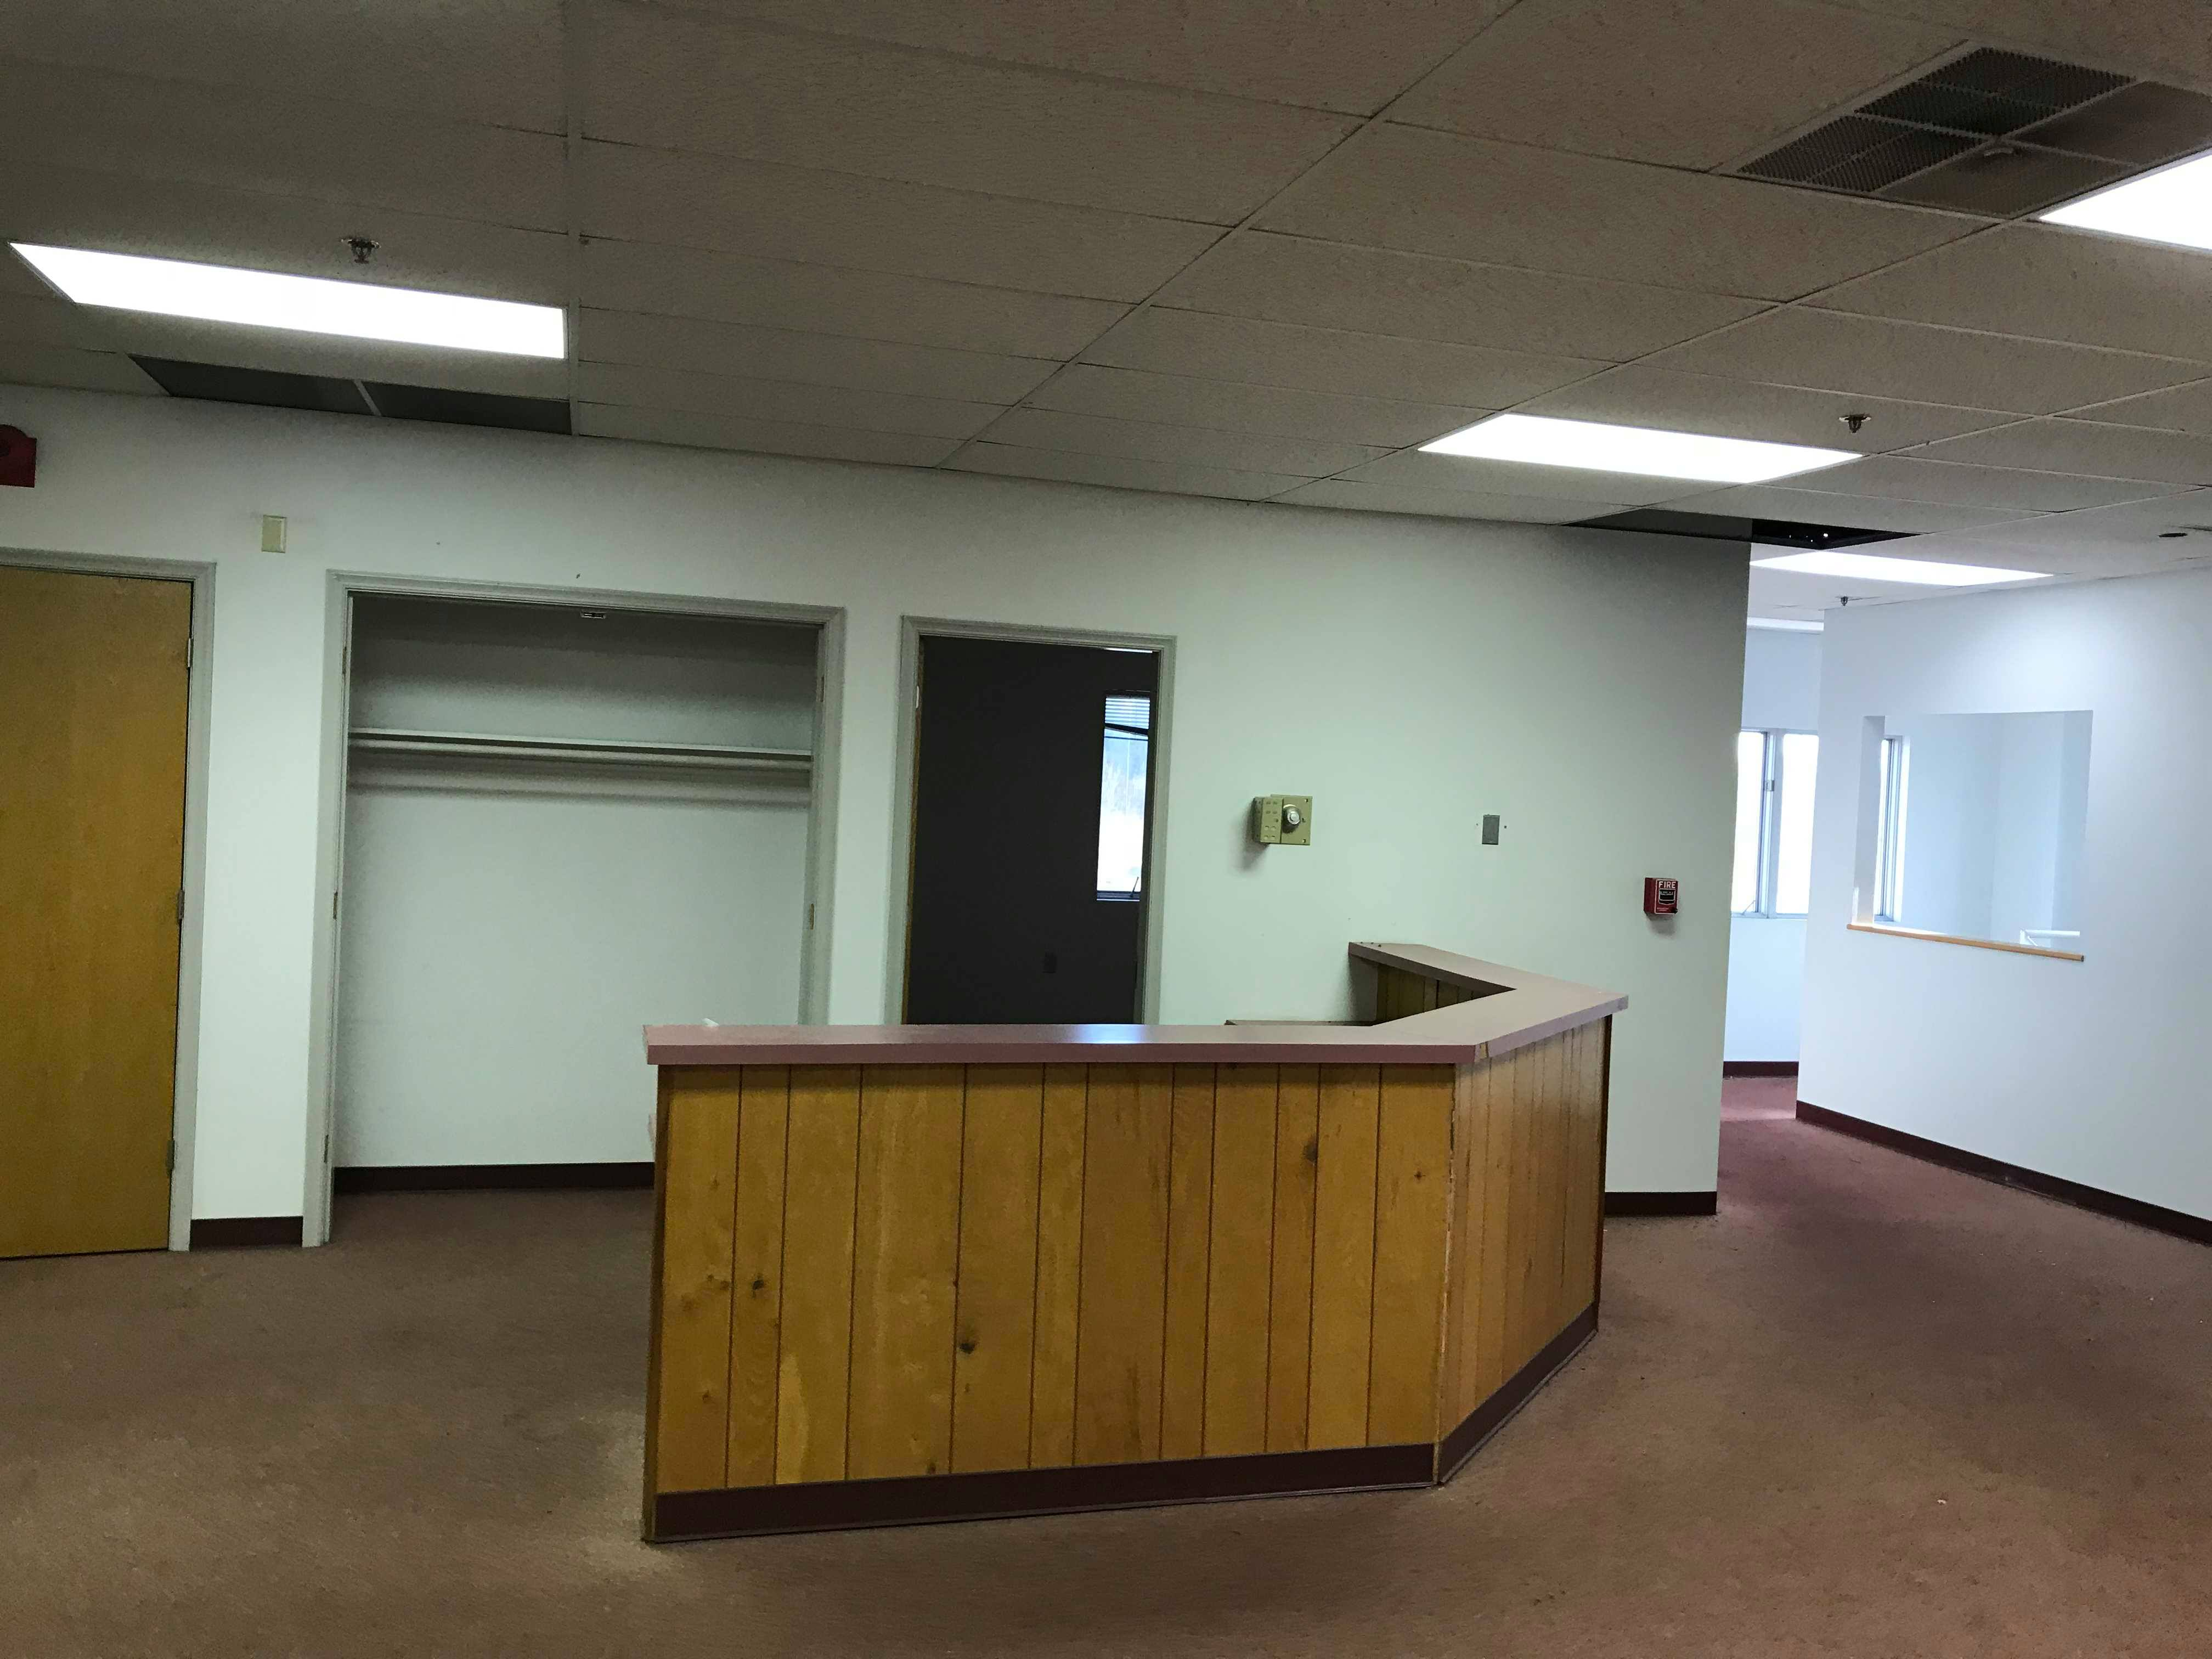 Photo of 16634 Industrial Lane- Office